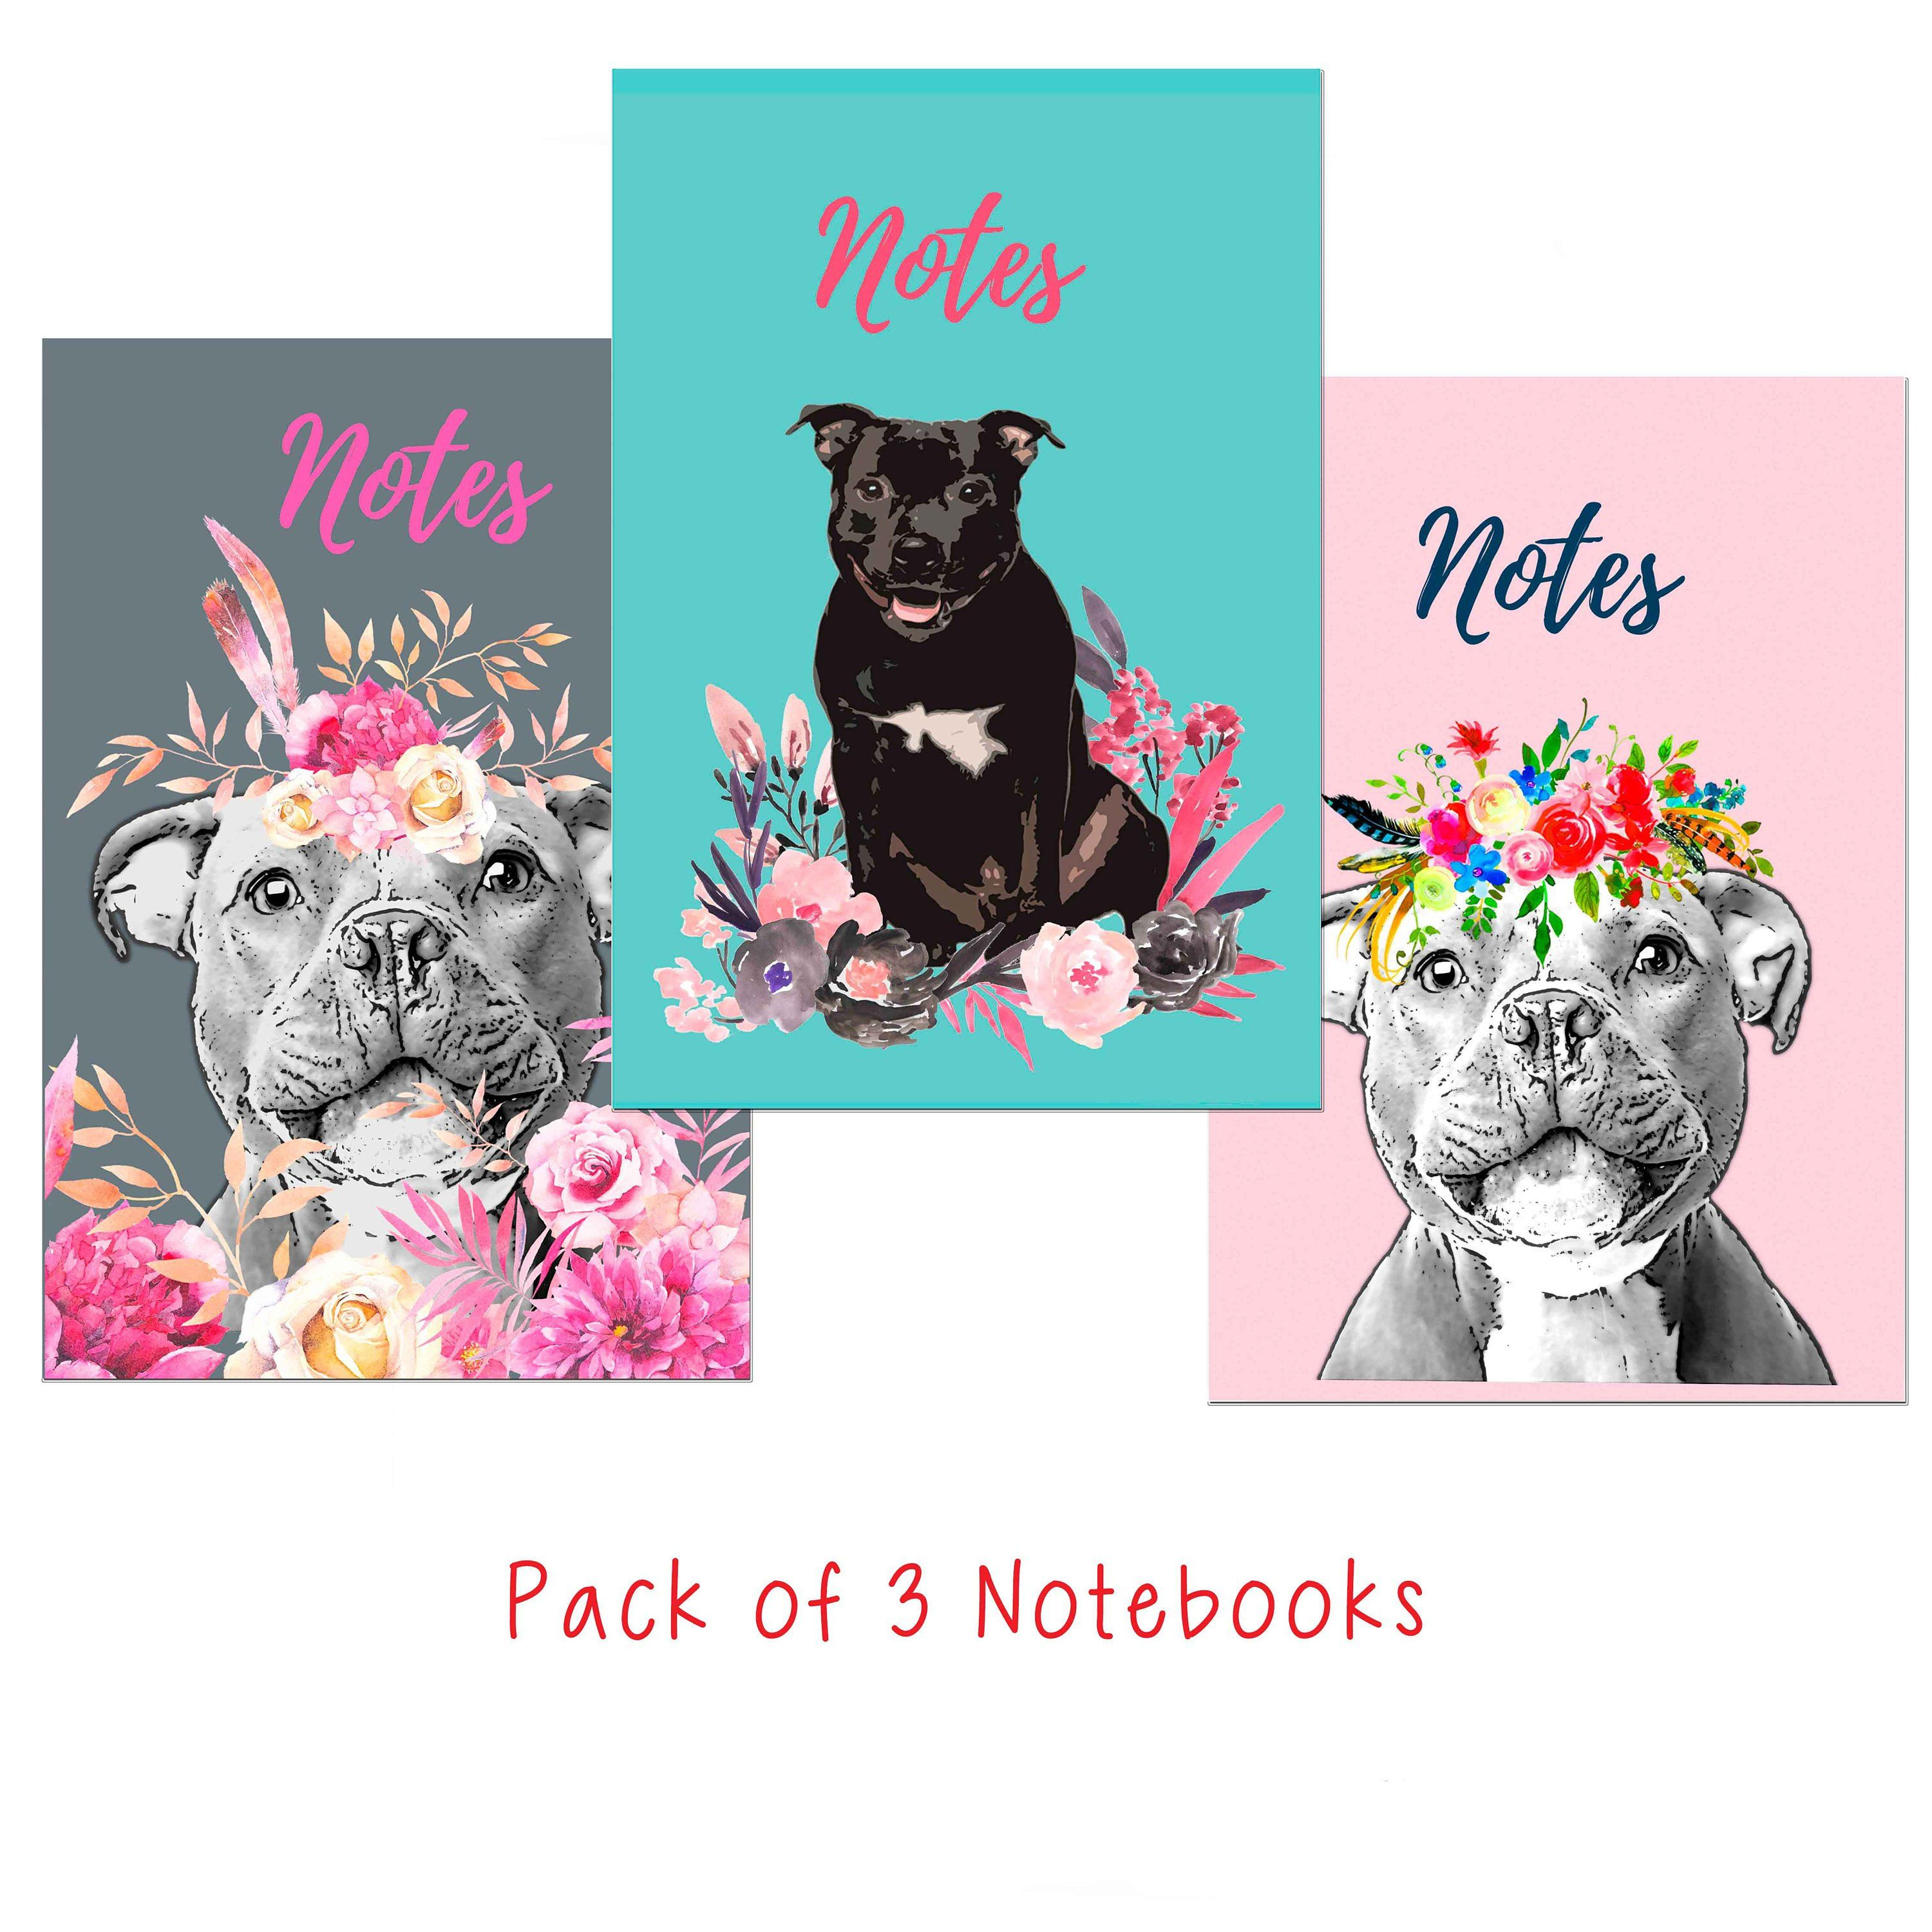 Staffordshire Bull Terrier A6 Notebooks Pack of 3